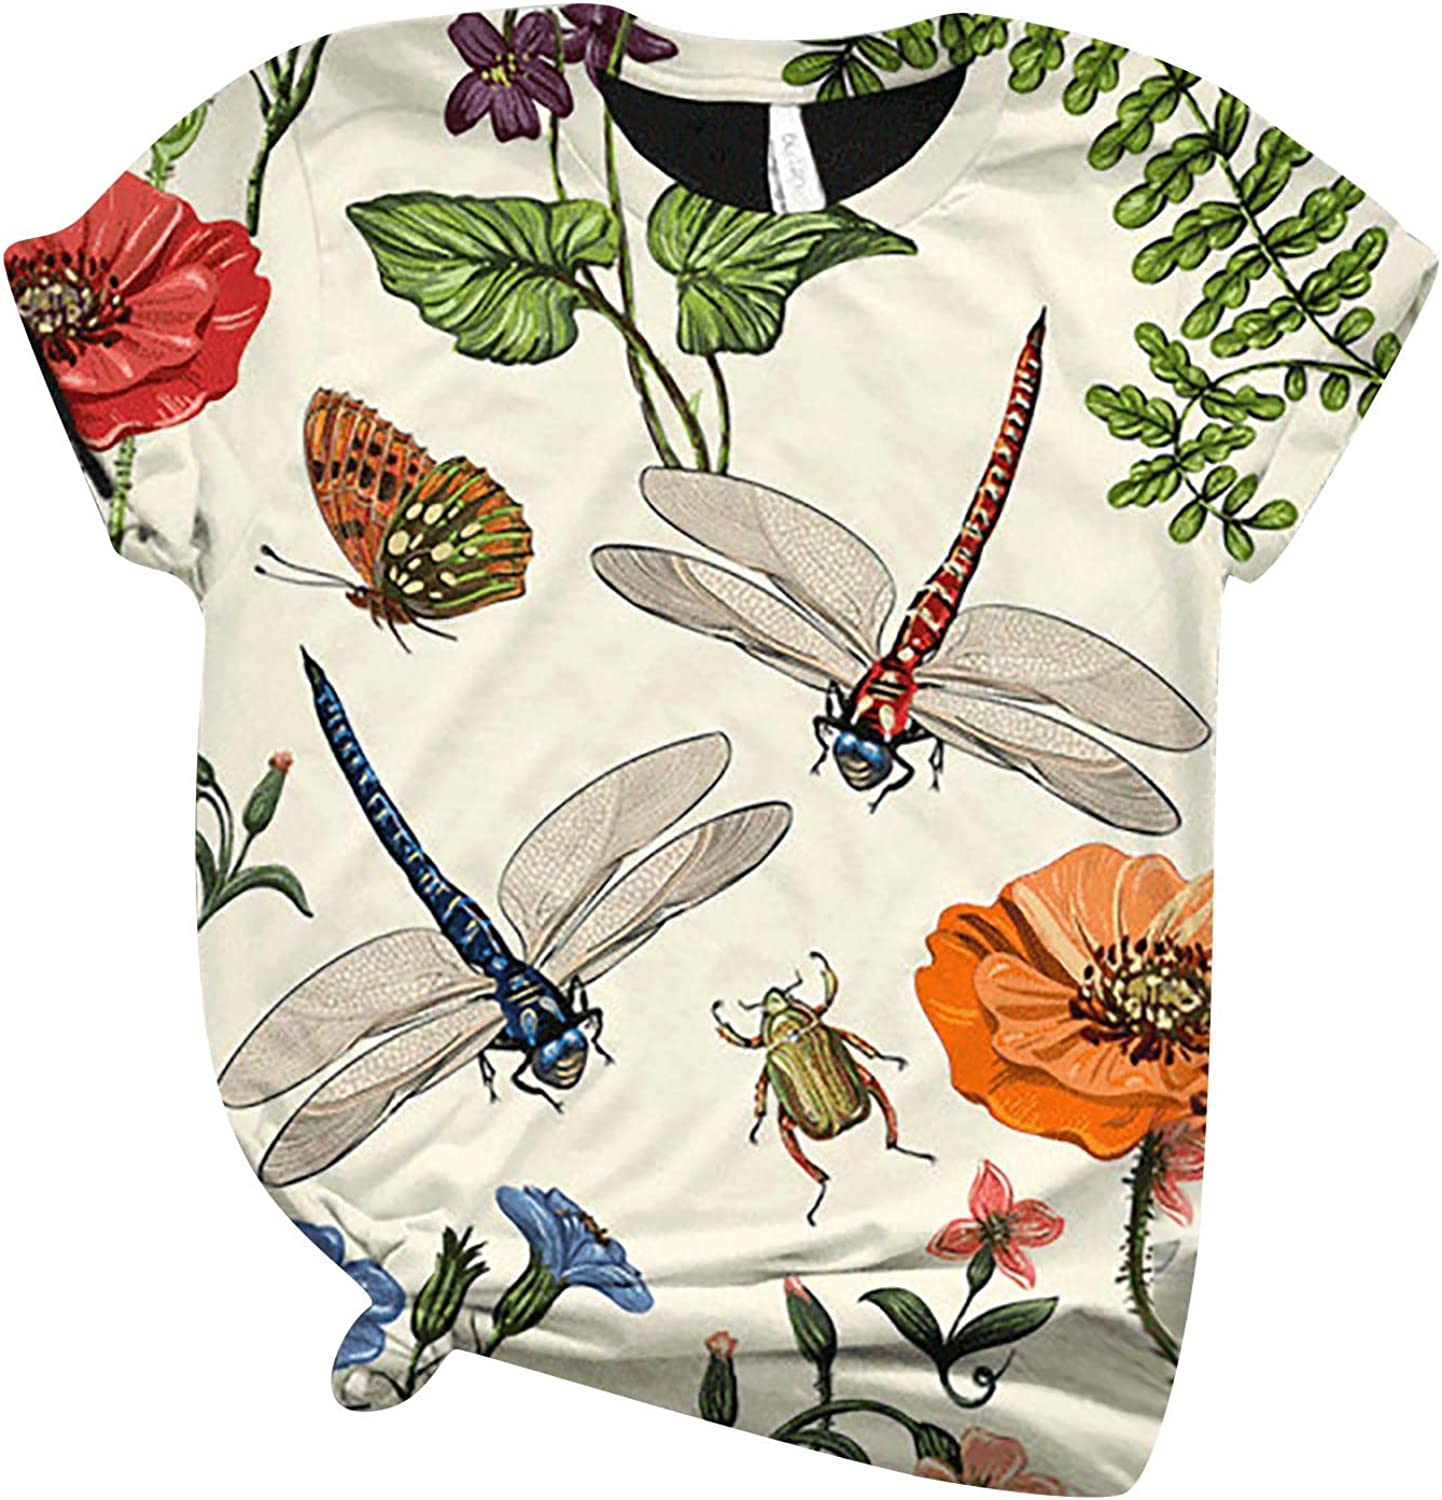 Womens Short Sleeve Tops, naioewe Dragonfly Print Shirts for Women Plus Size O-Neck T Shirt Blouse Tops Graphic Tees